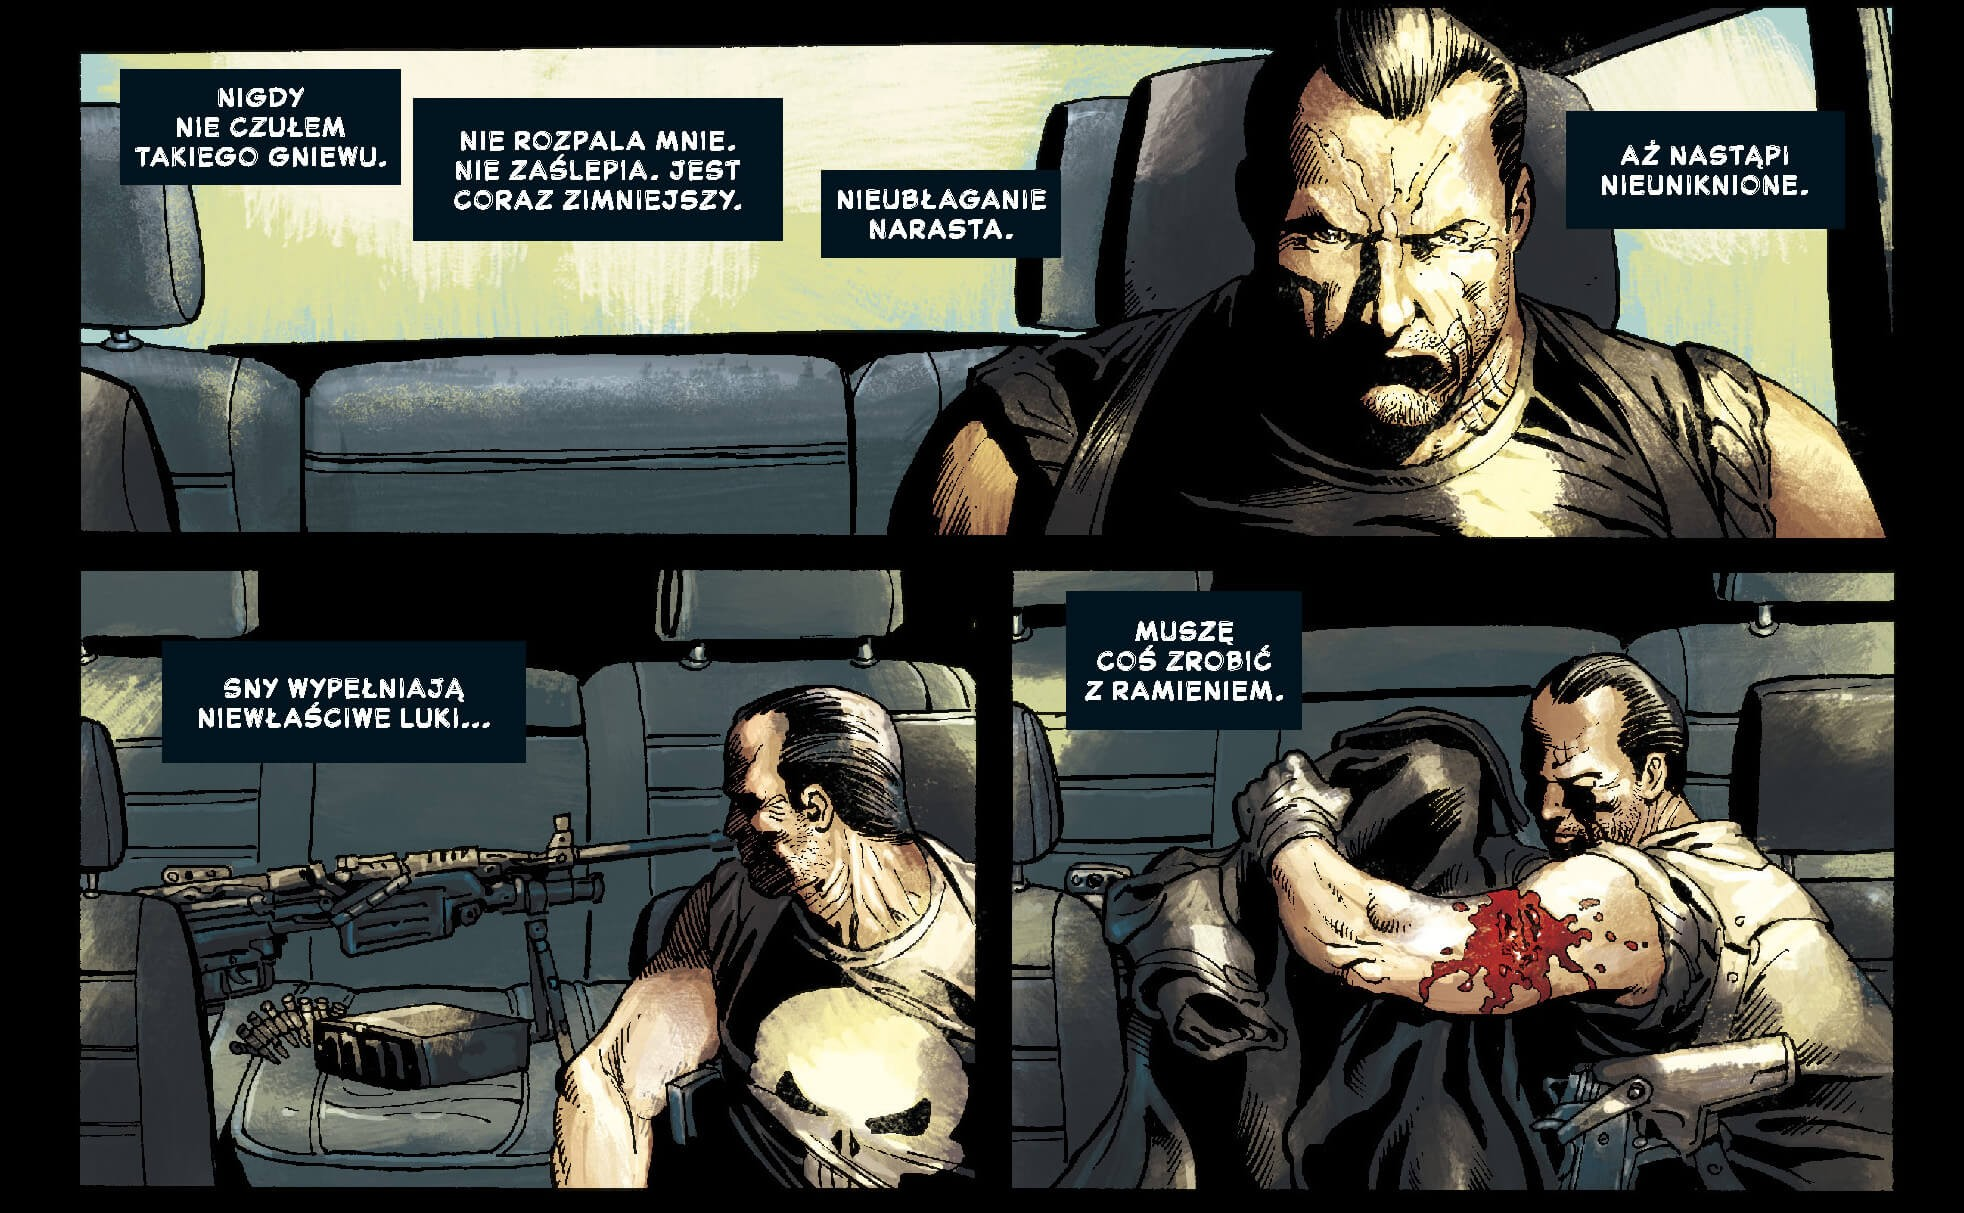 punisher_t2_plansza_02.jpg